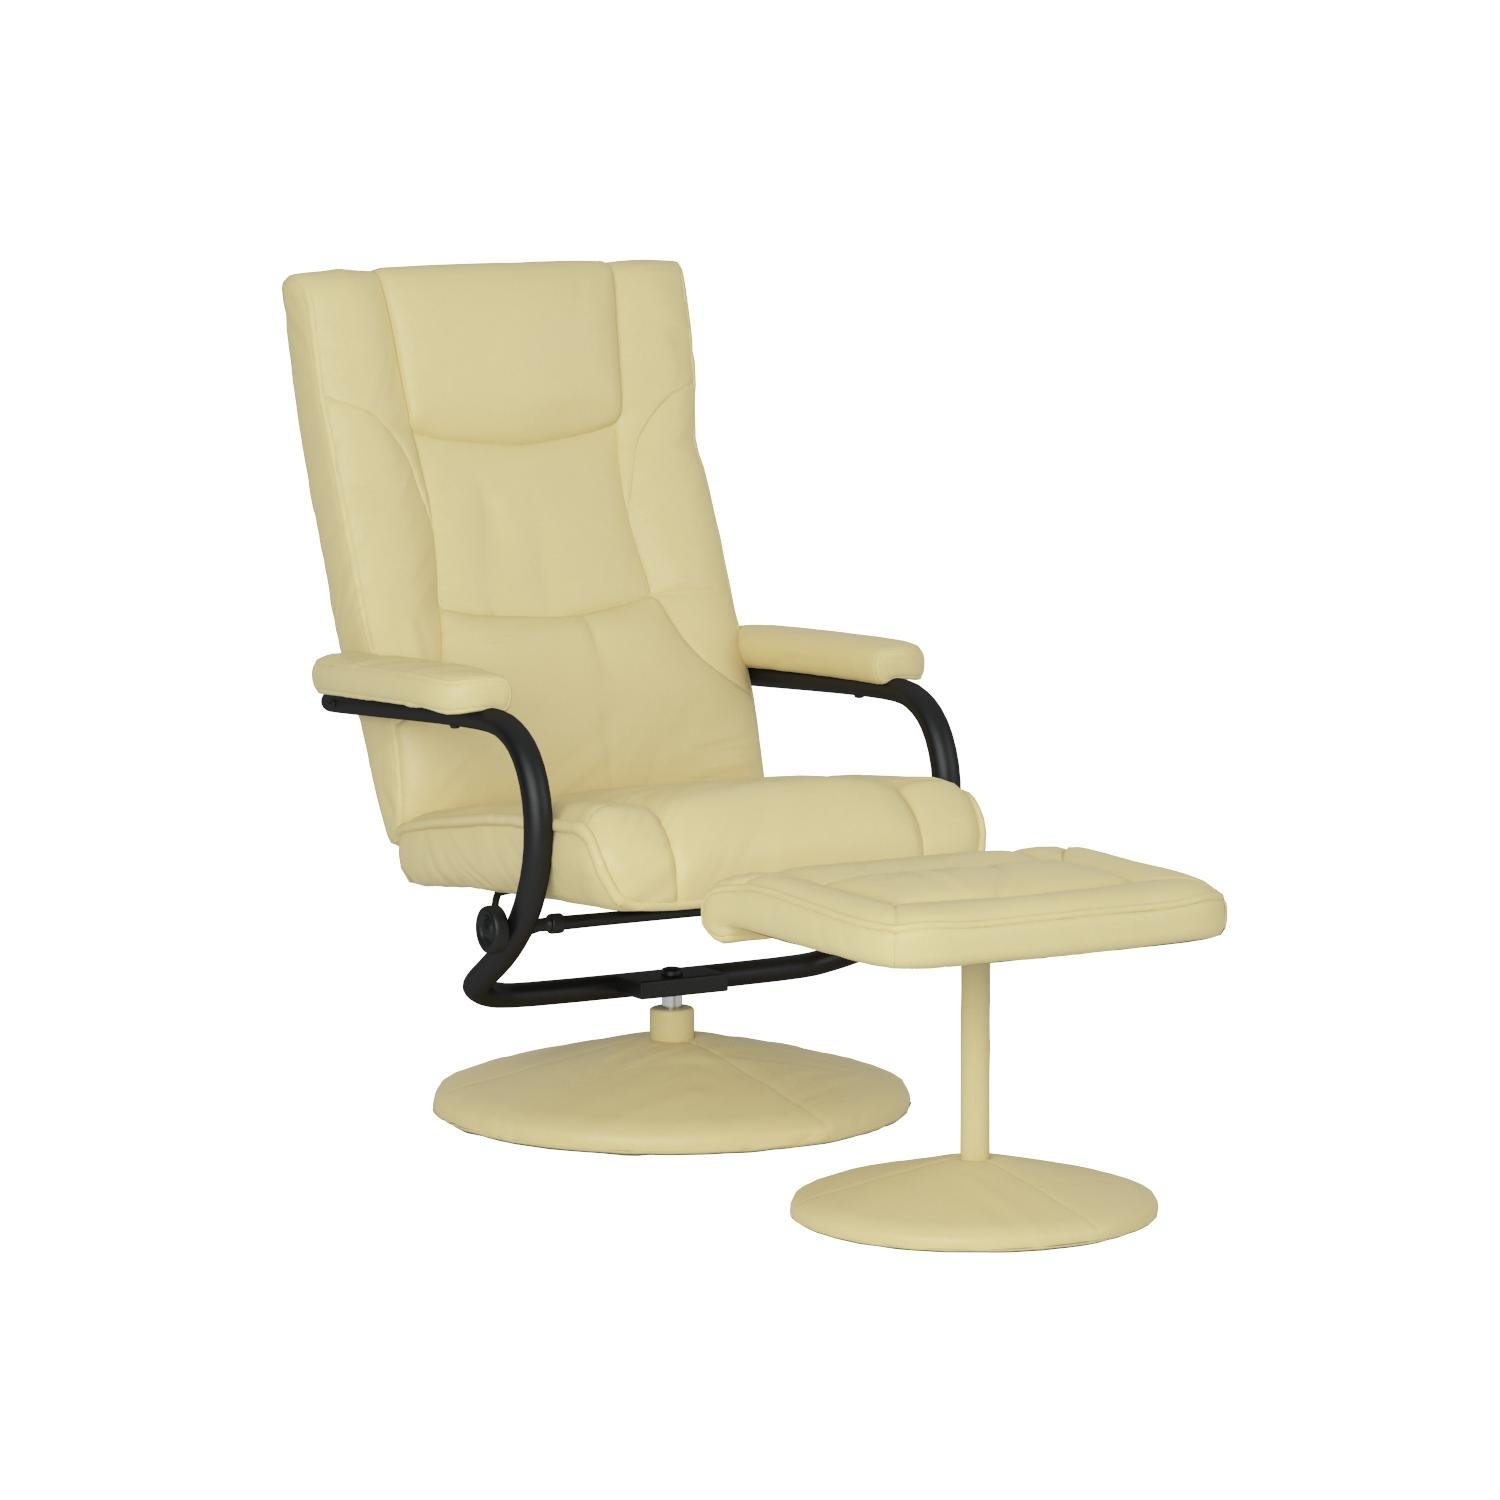 Flash Furniture Contemporary Multi-Position Recliner and Ottoman with Wrapped Base in Cream Leather by Flash Furniture